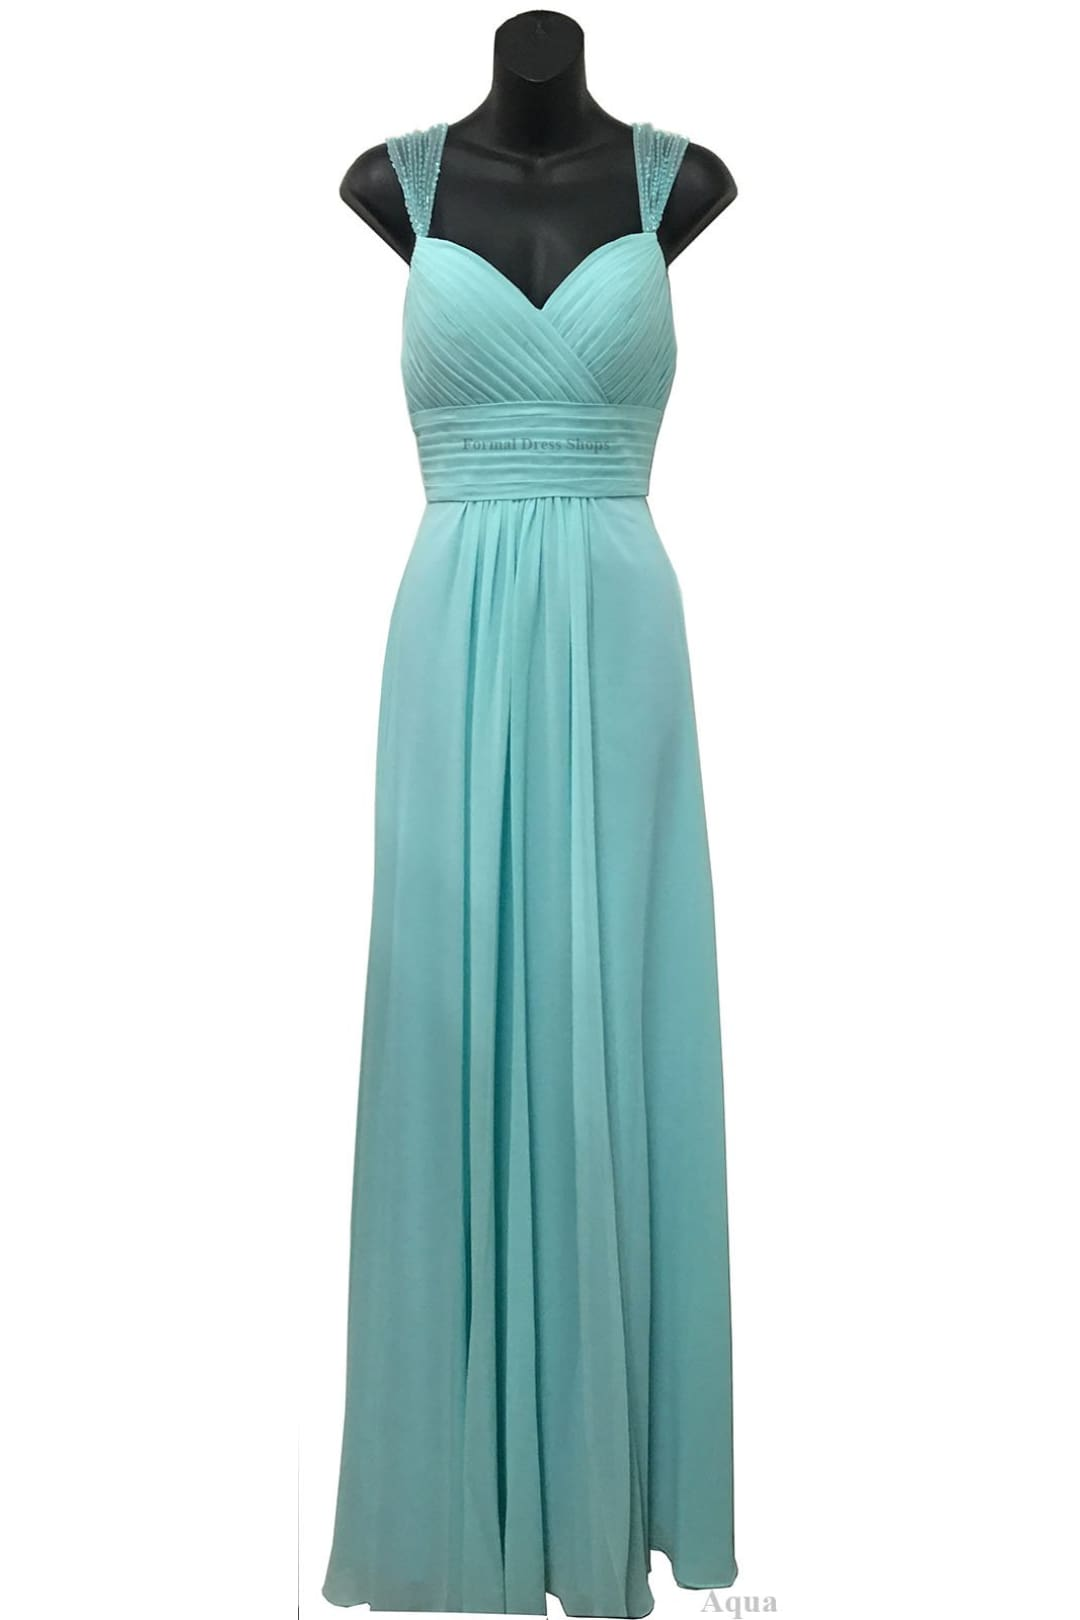 Classy Long Evening Gown